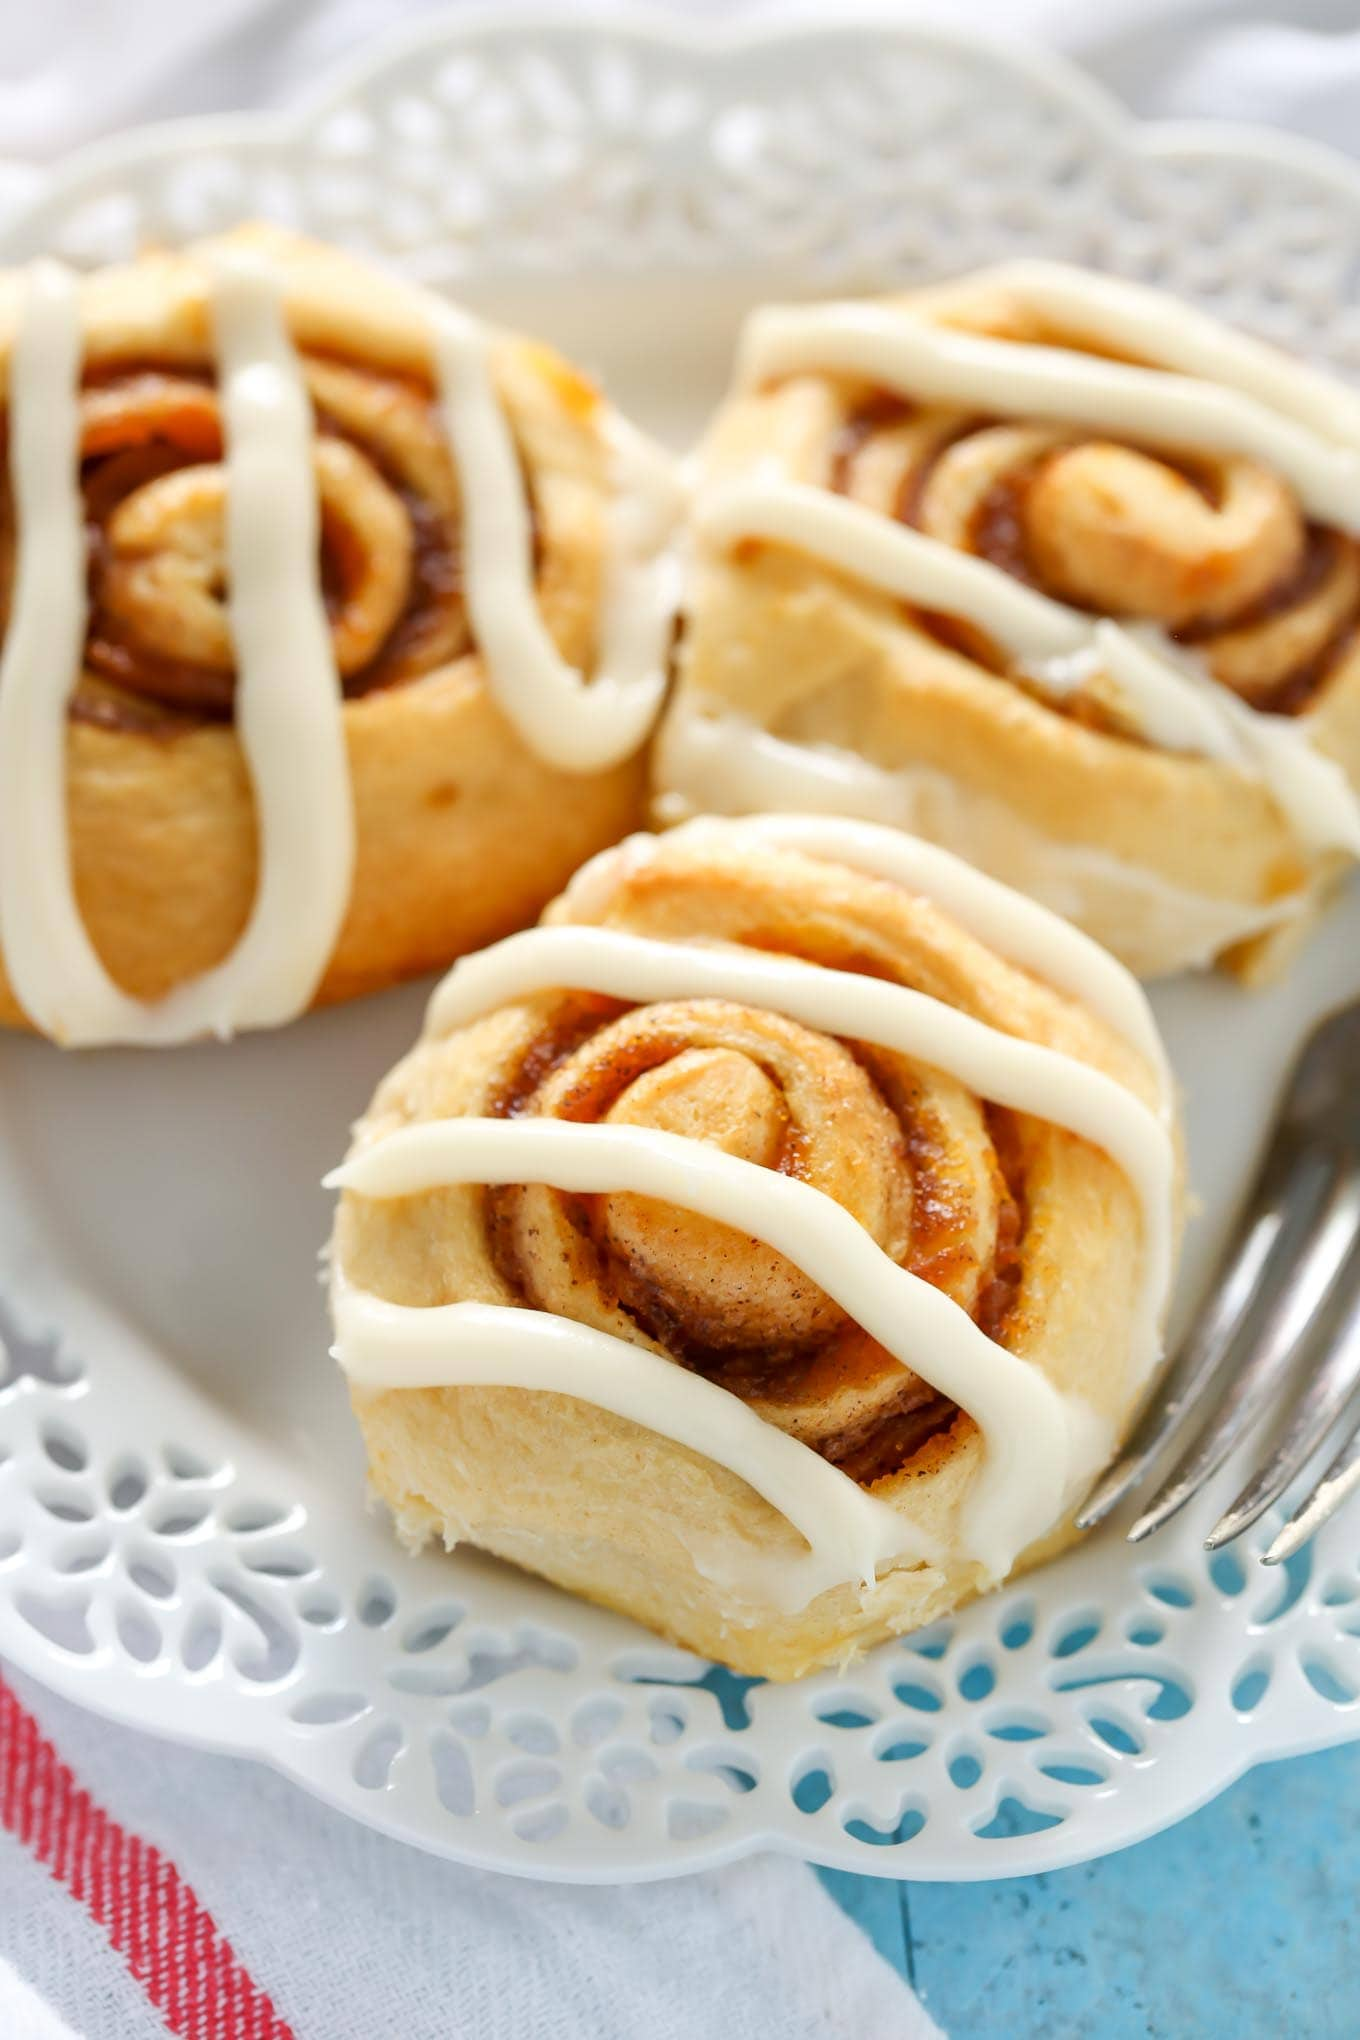 Easy Pumpkin Cinnamon Rolls made with crescent dough and topped with a homemade cream cheese frosting. The perfect fall breakfast!